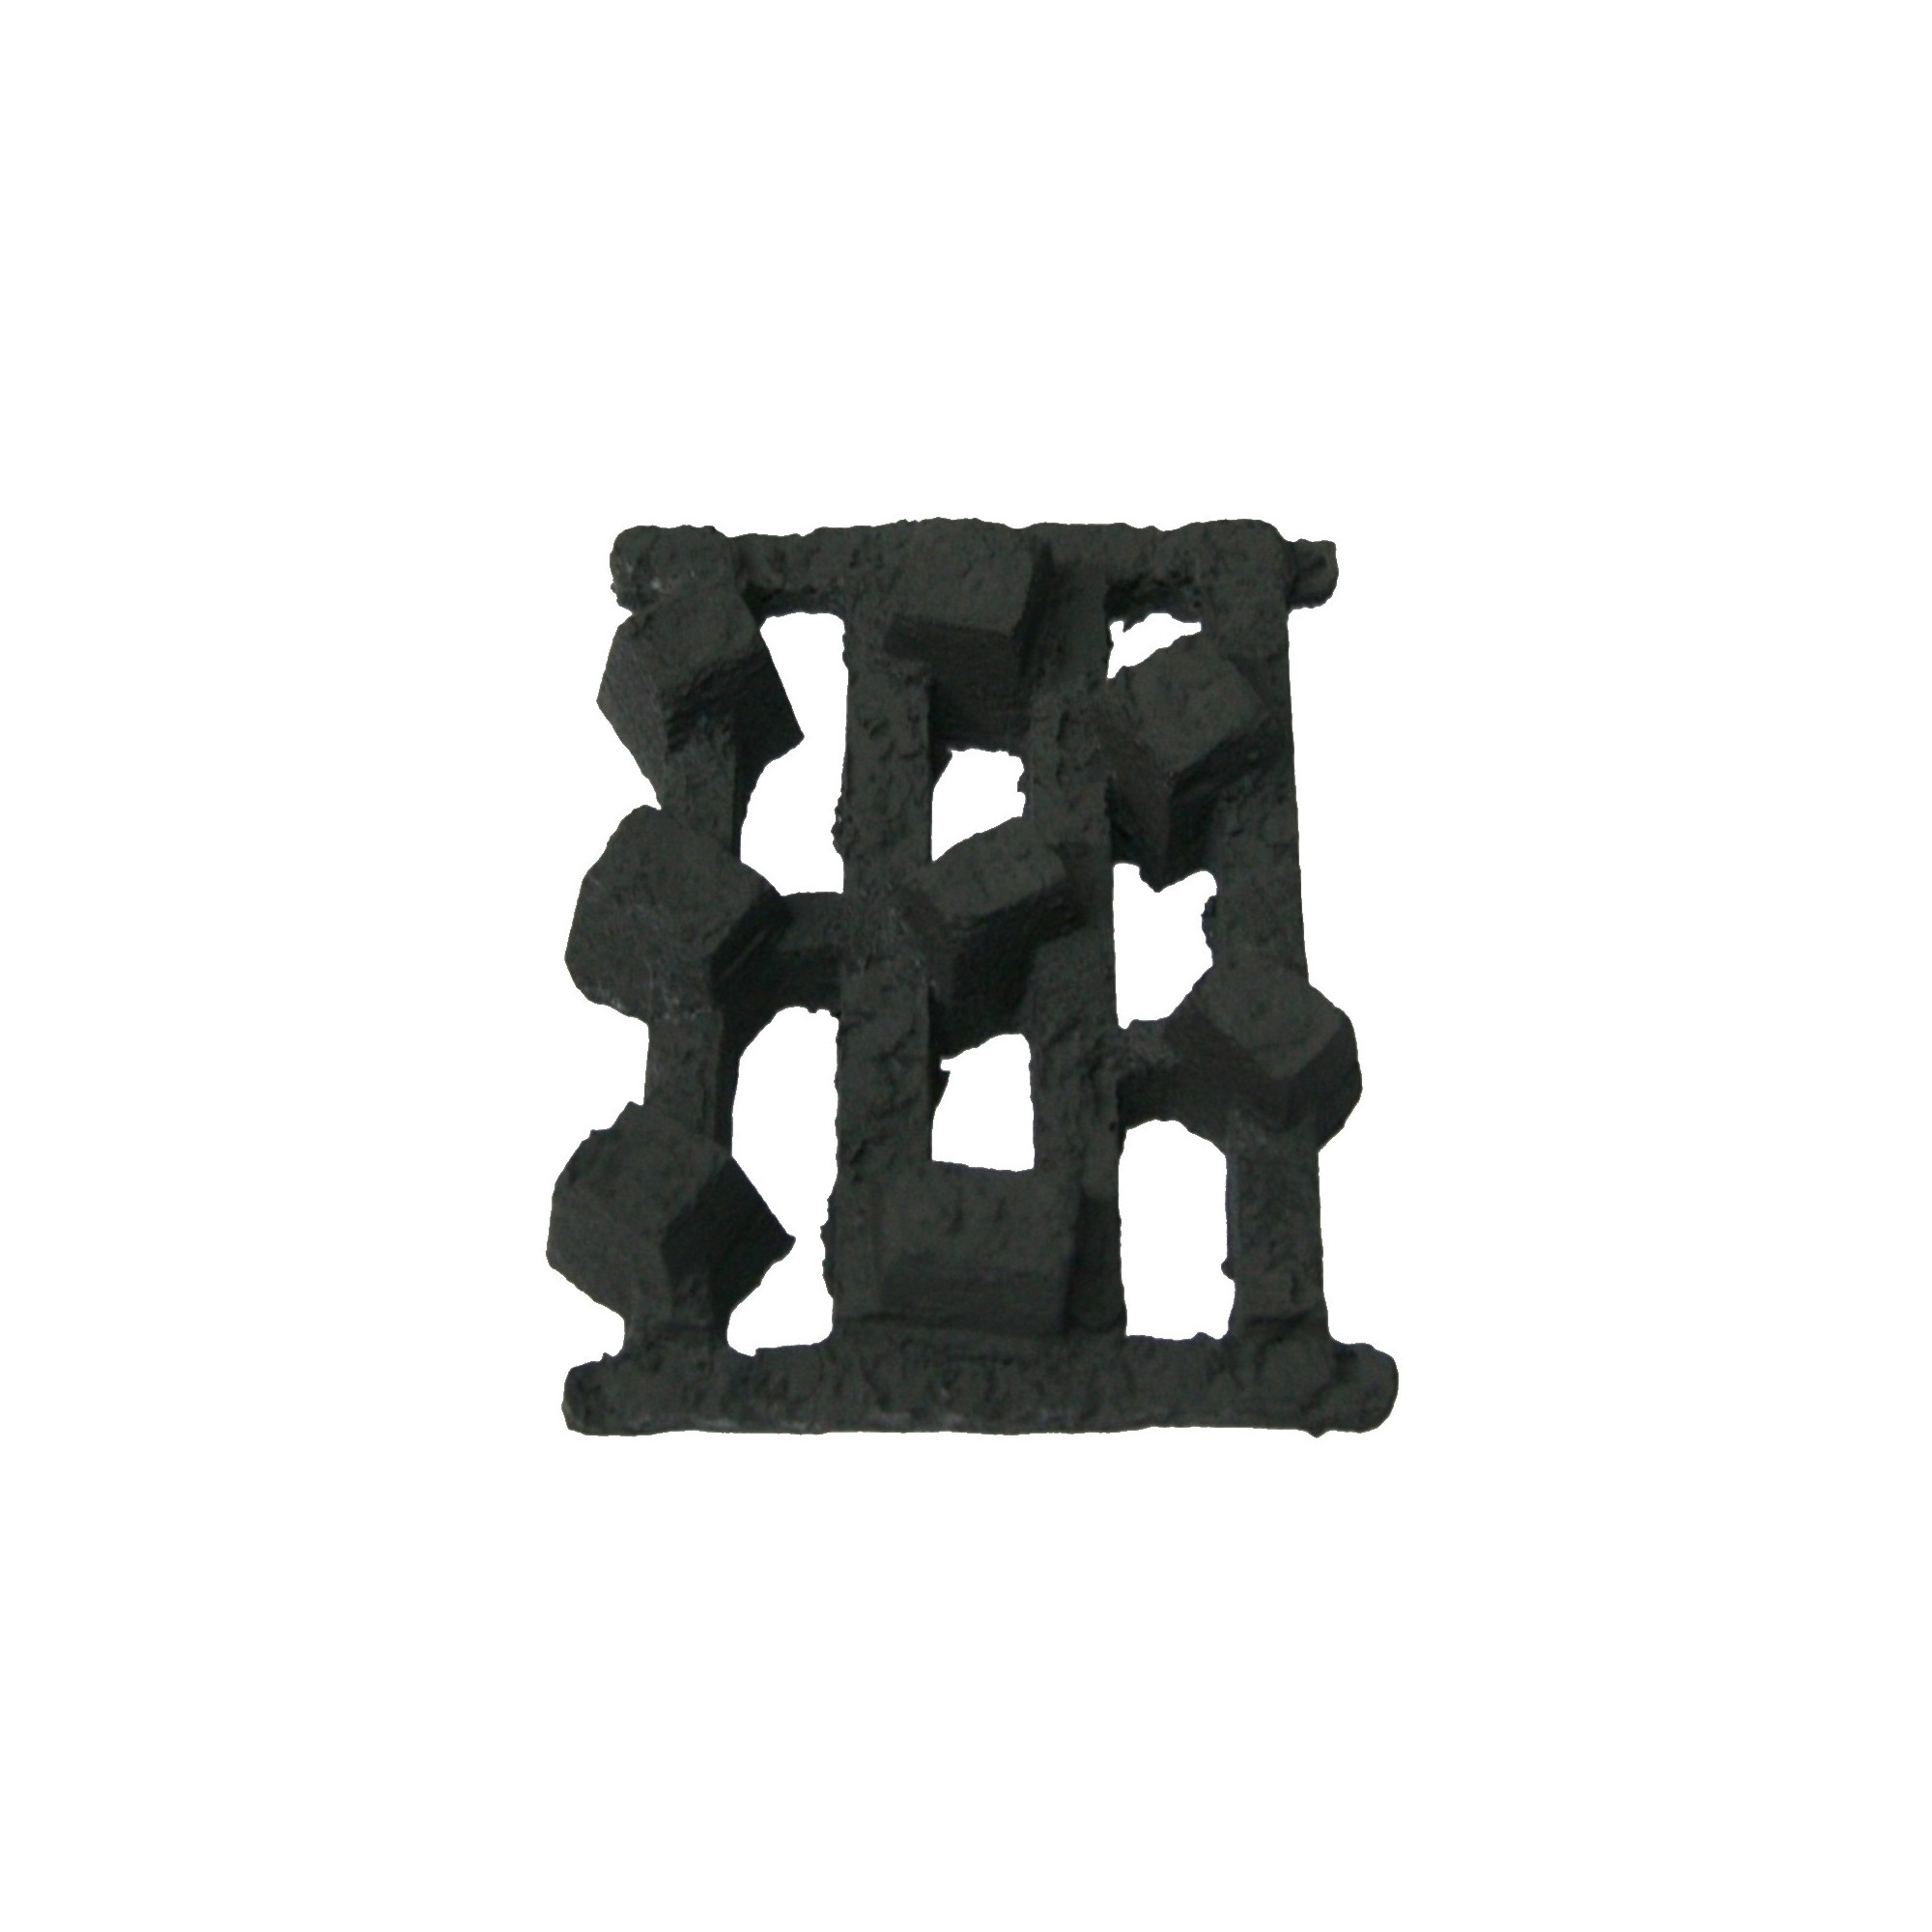 COAL GRILLE A6000 A63 - A63MIL